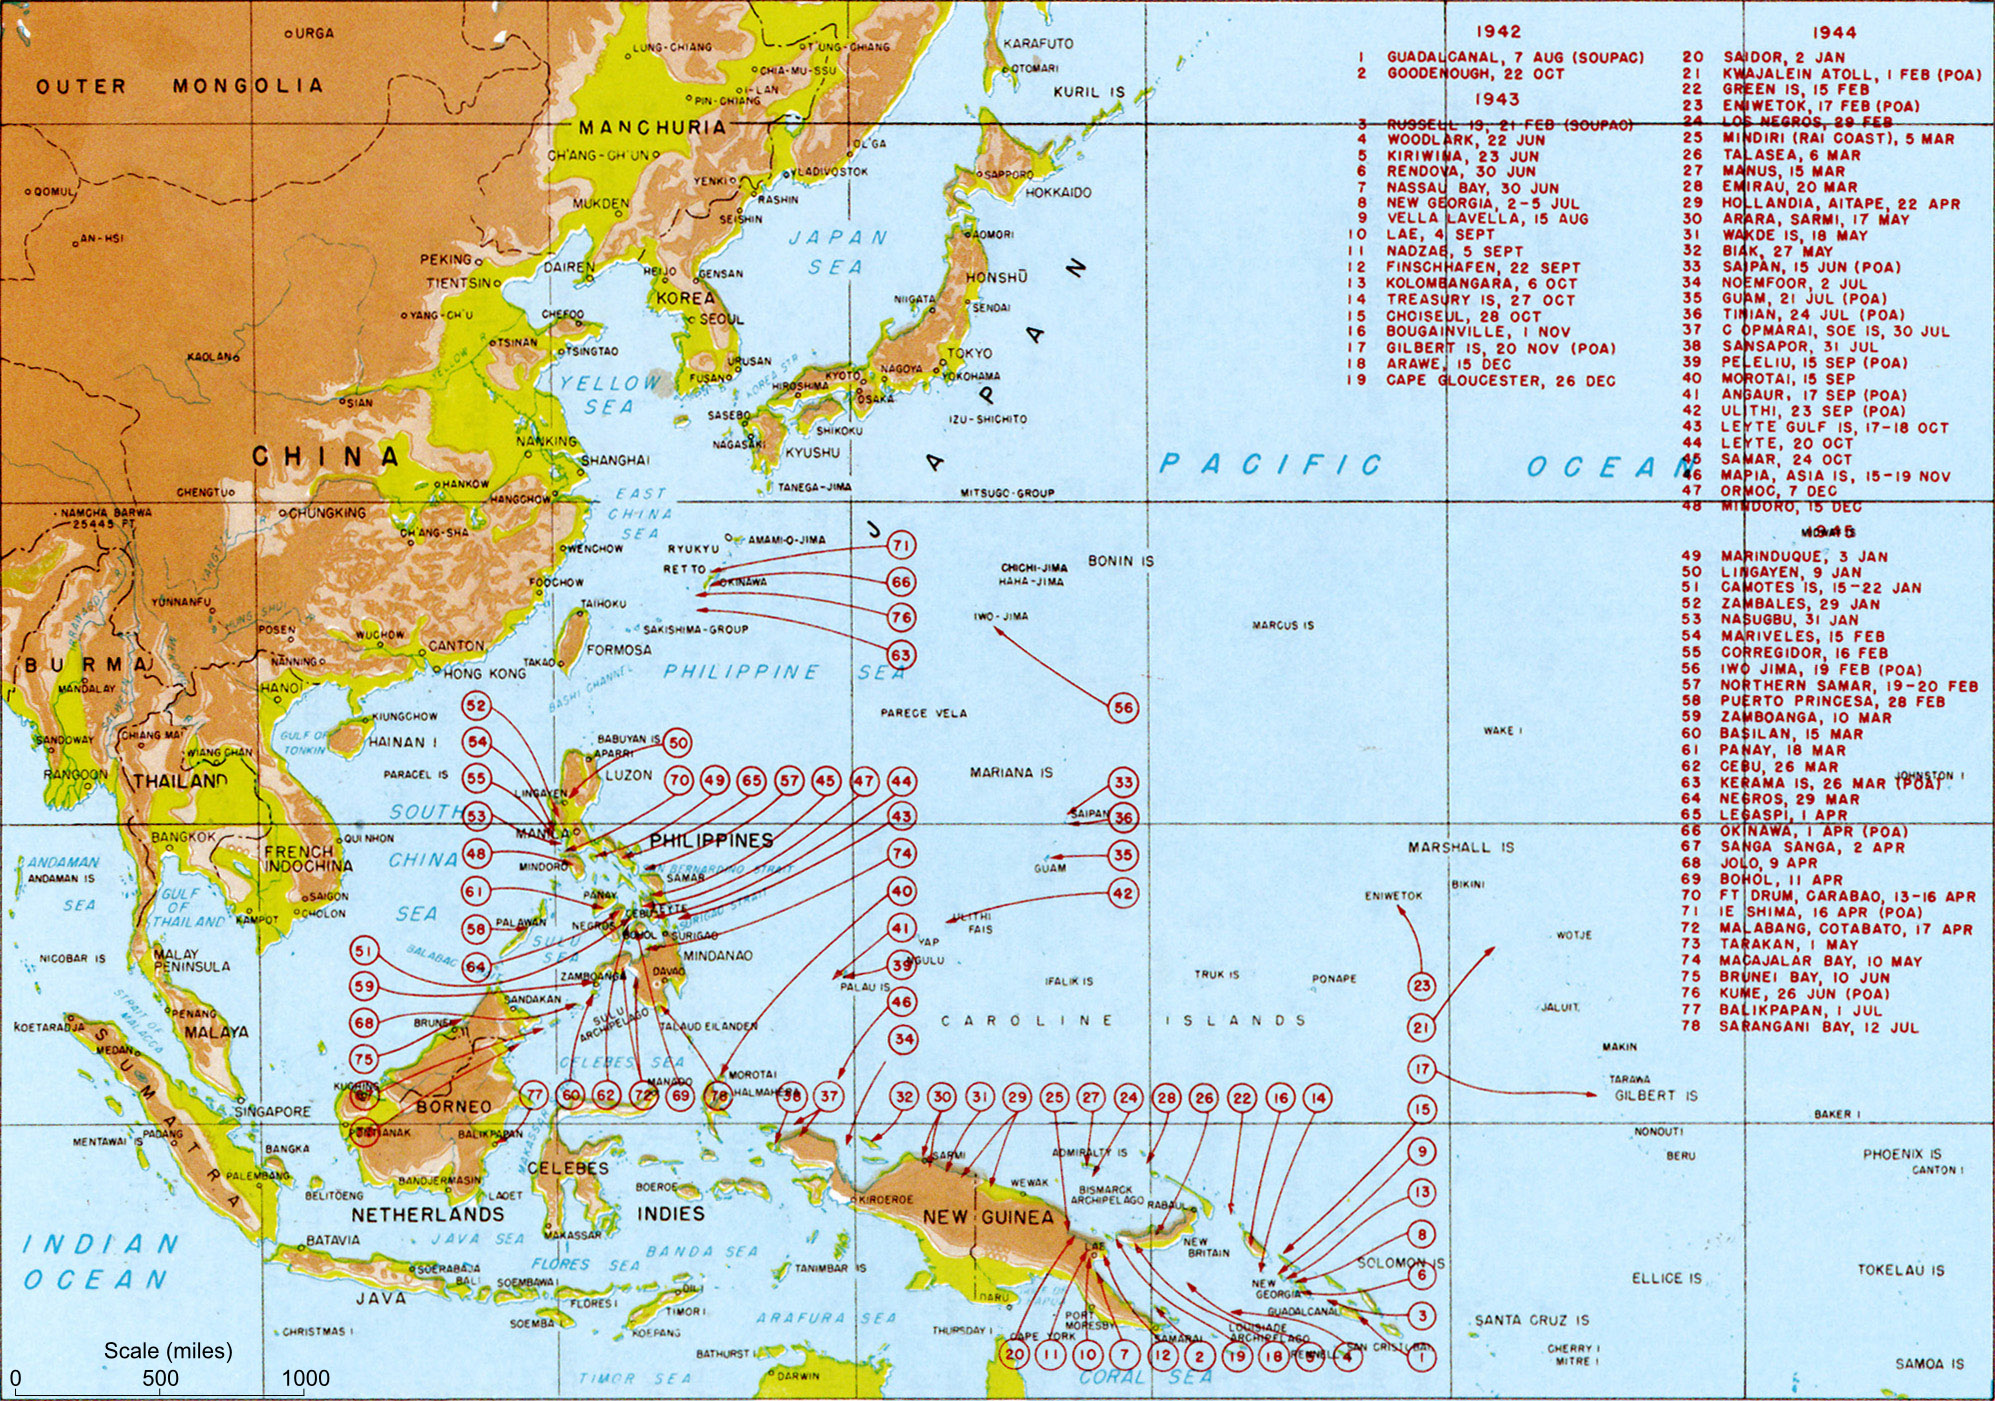 Pacific War - Wikipedia on map of japan military, map of japan animation, japanese territory in ww2, japan flag ww2, map of japan christmas, map of japan art, map of japan school, map of japan modern, map of japan japanese, map of japan russia, map of japan 1950s, map of japan 1940s, map of japan korea, map of japan world war 2, map of japan history, map of japan food, map of japan china, map of japan religion, map of japan pokemon, extent of japanese empire in ww2,